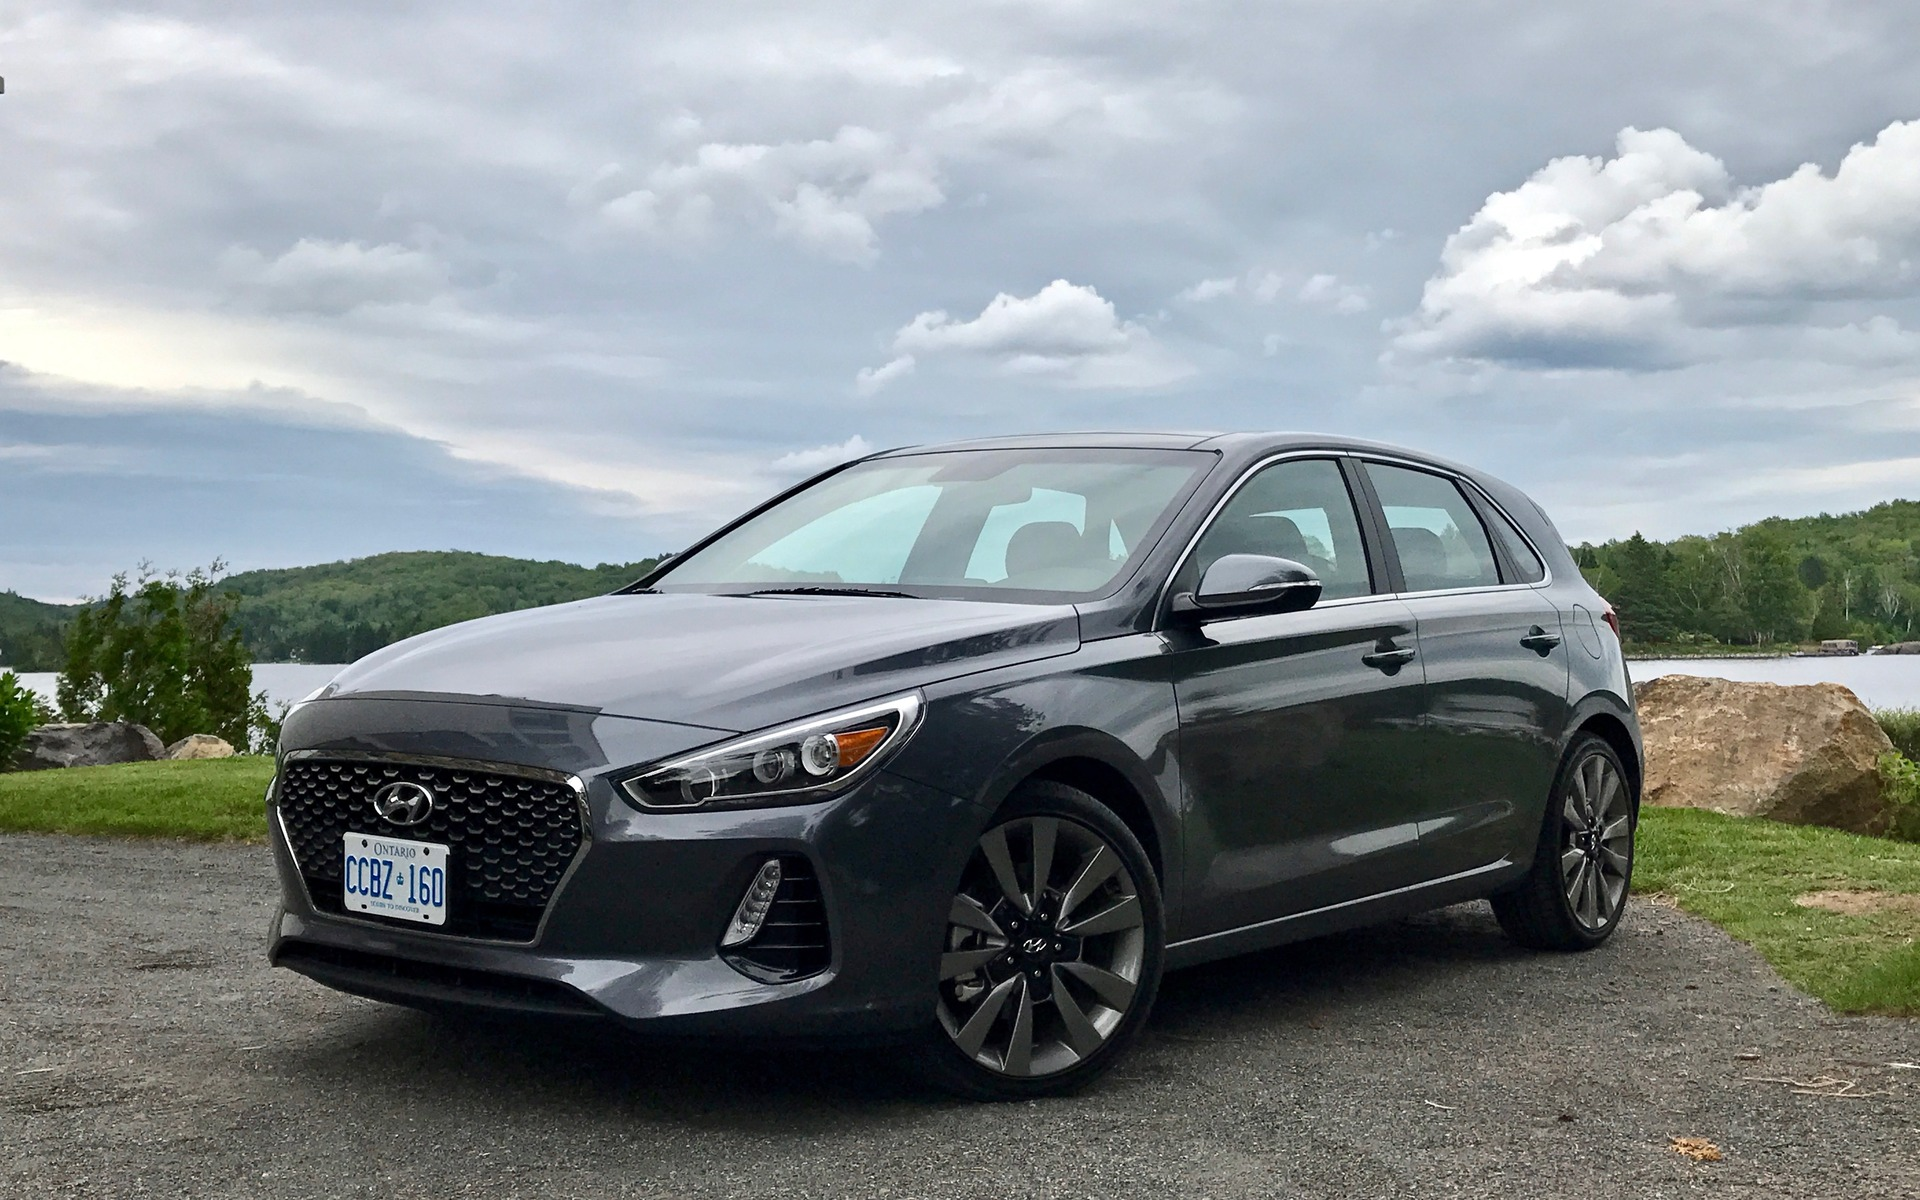 2018 hyundai elantra gt slightly below expectations the car guide. Black Bedroom Furniture Sets. Home Design Ideas